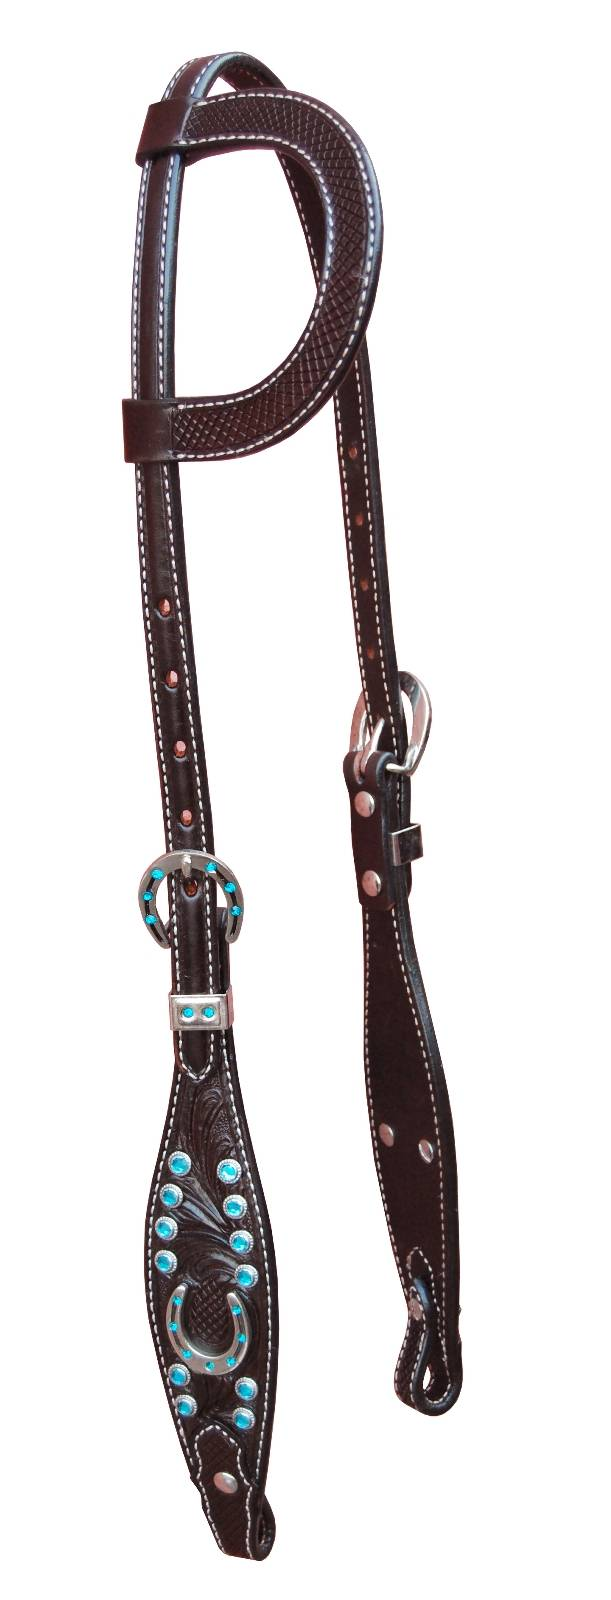 Turn-Two One Ear Headstall - Stampede